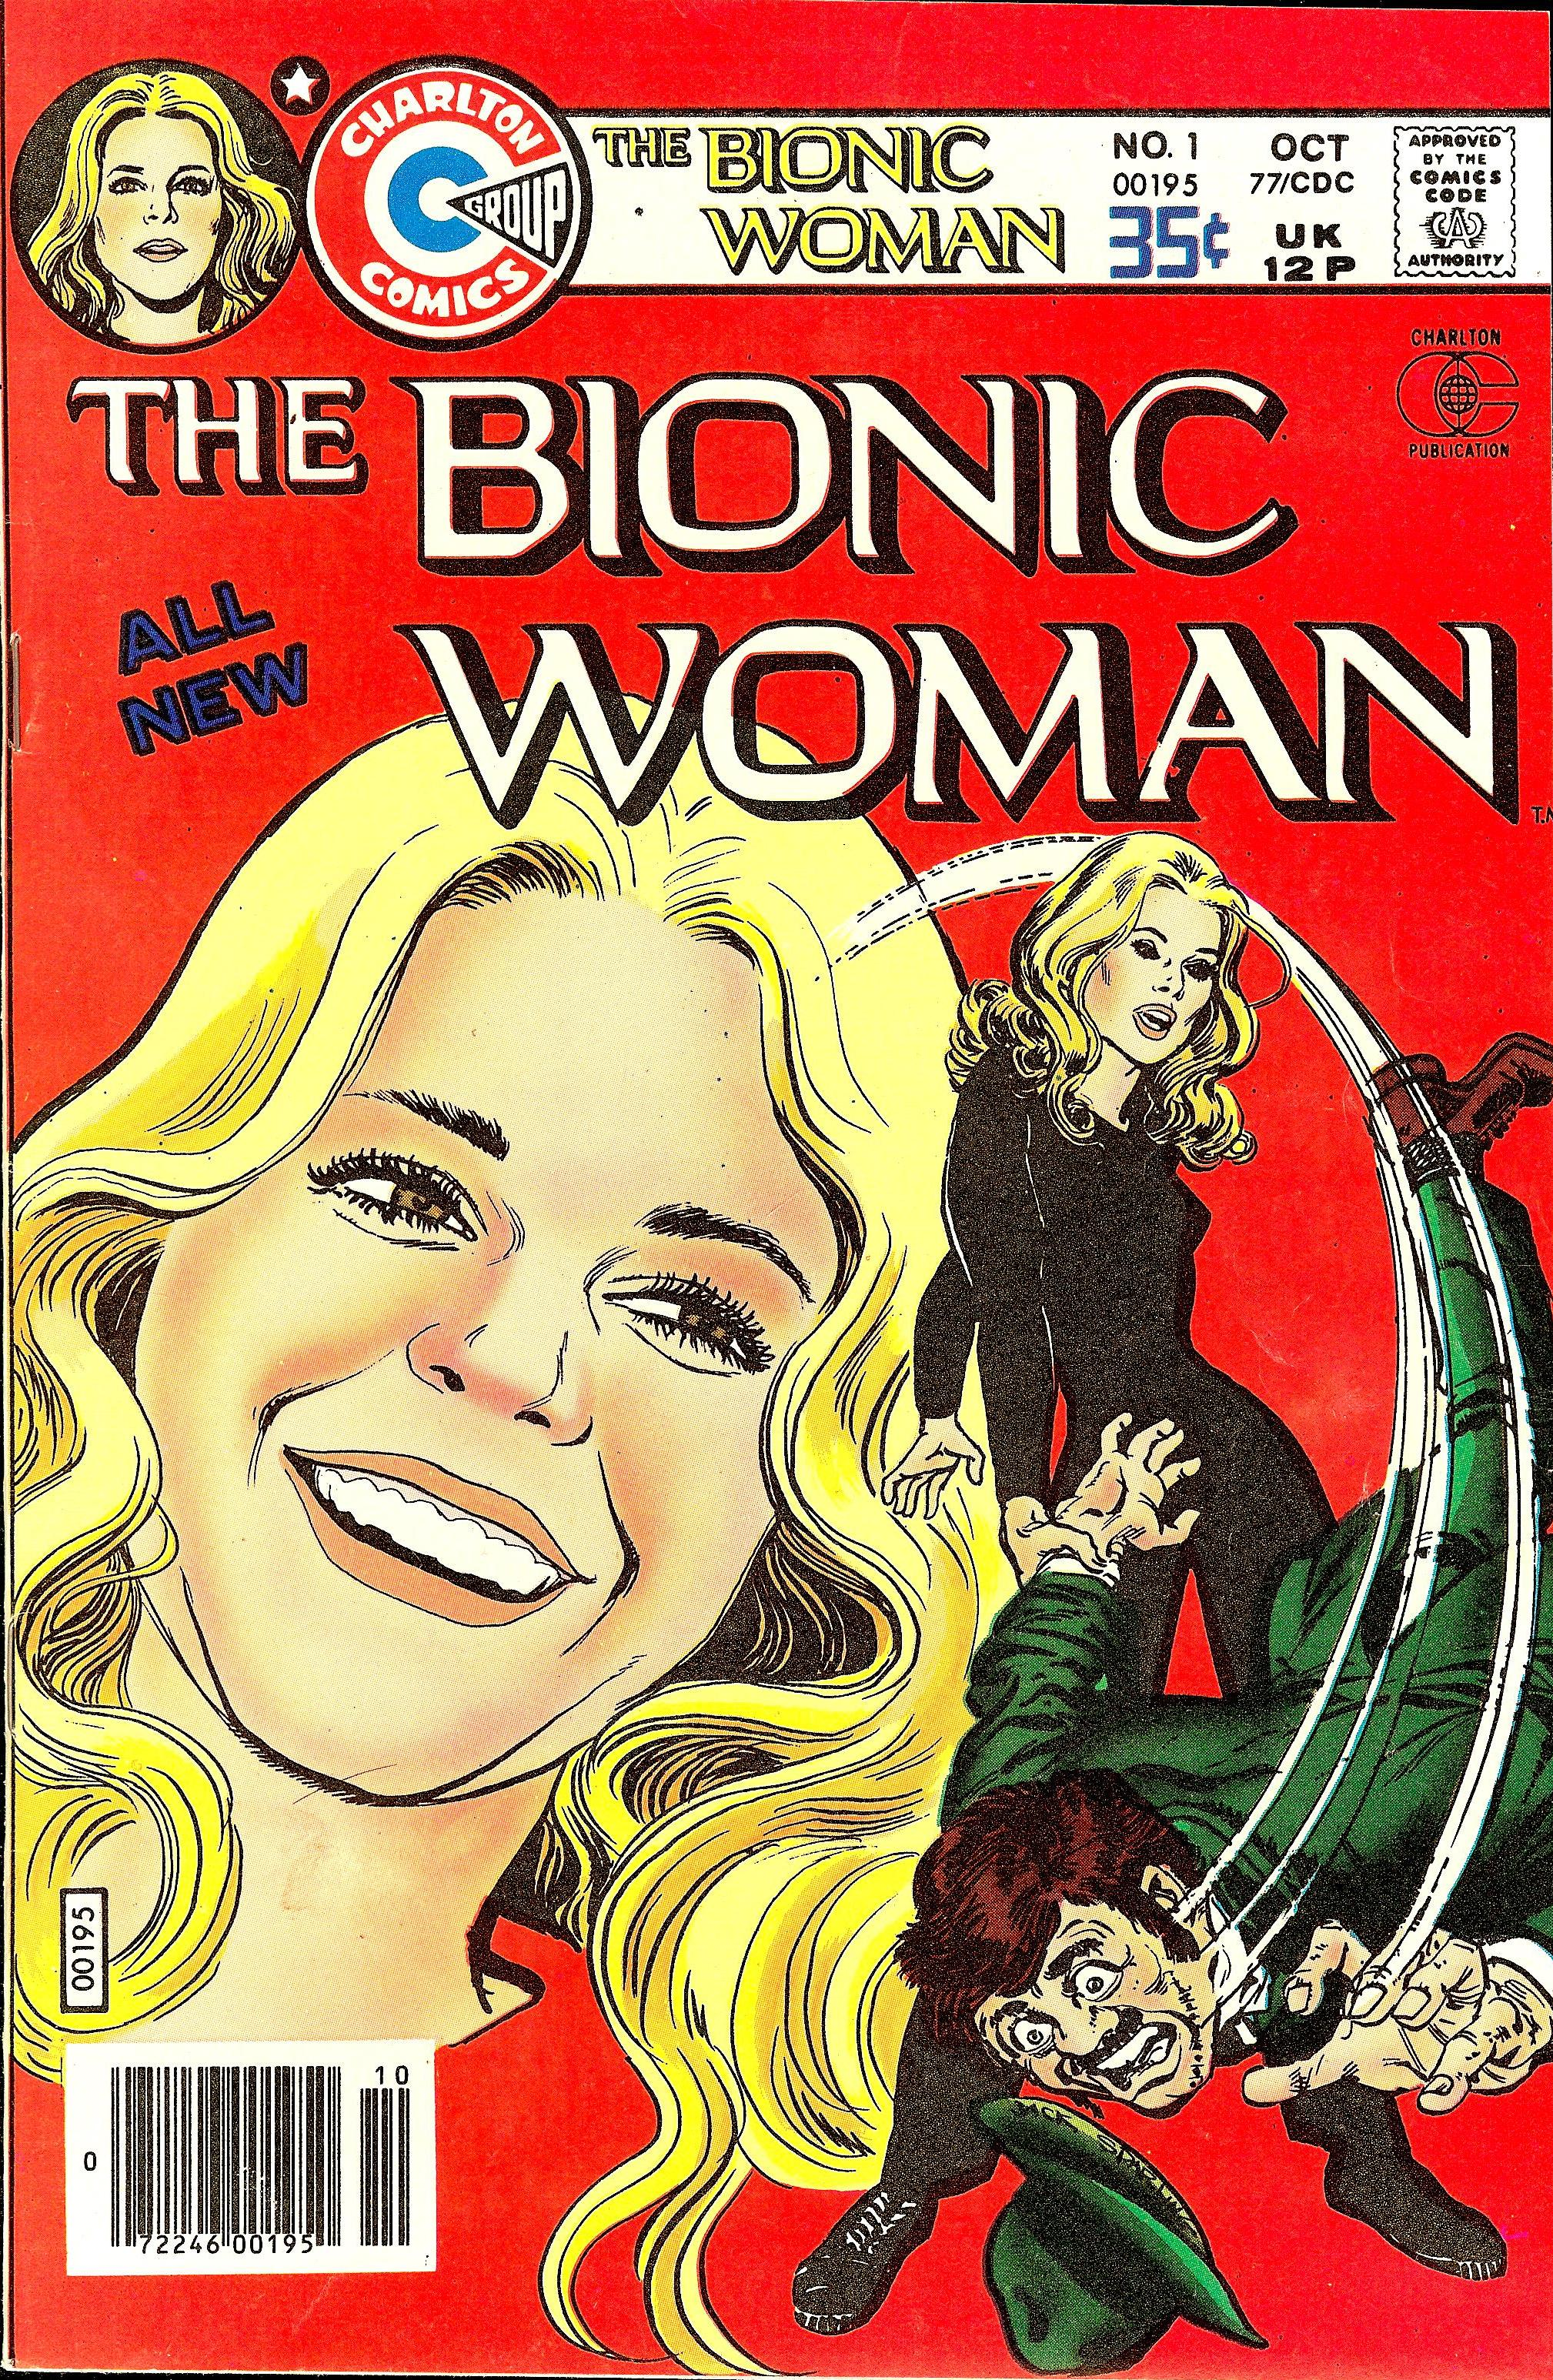 The Bionic Woman Vol 1 1